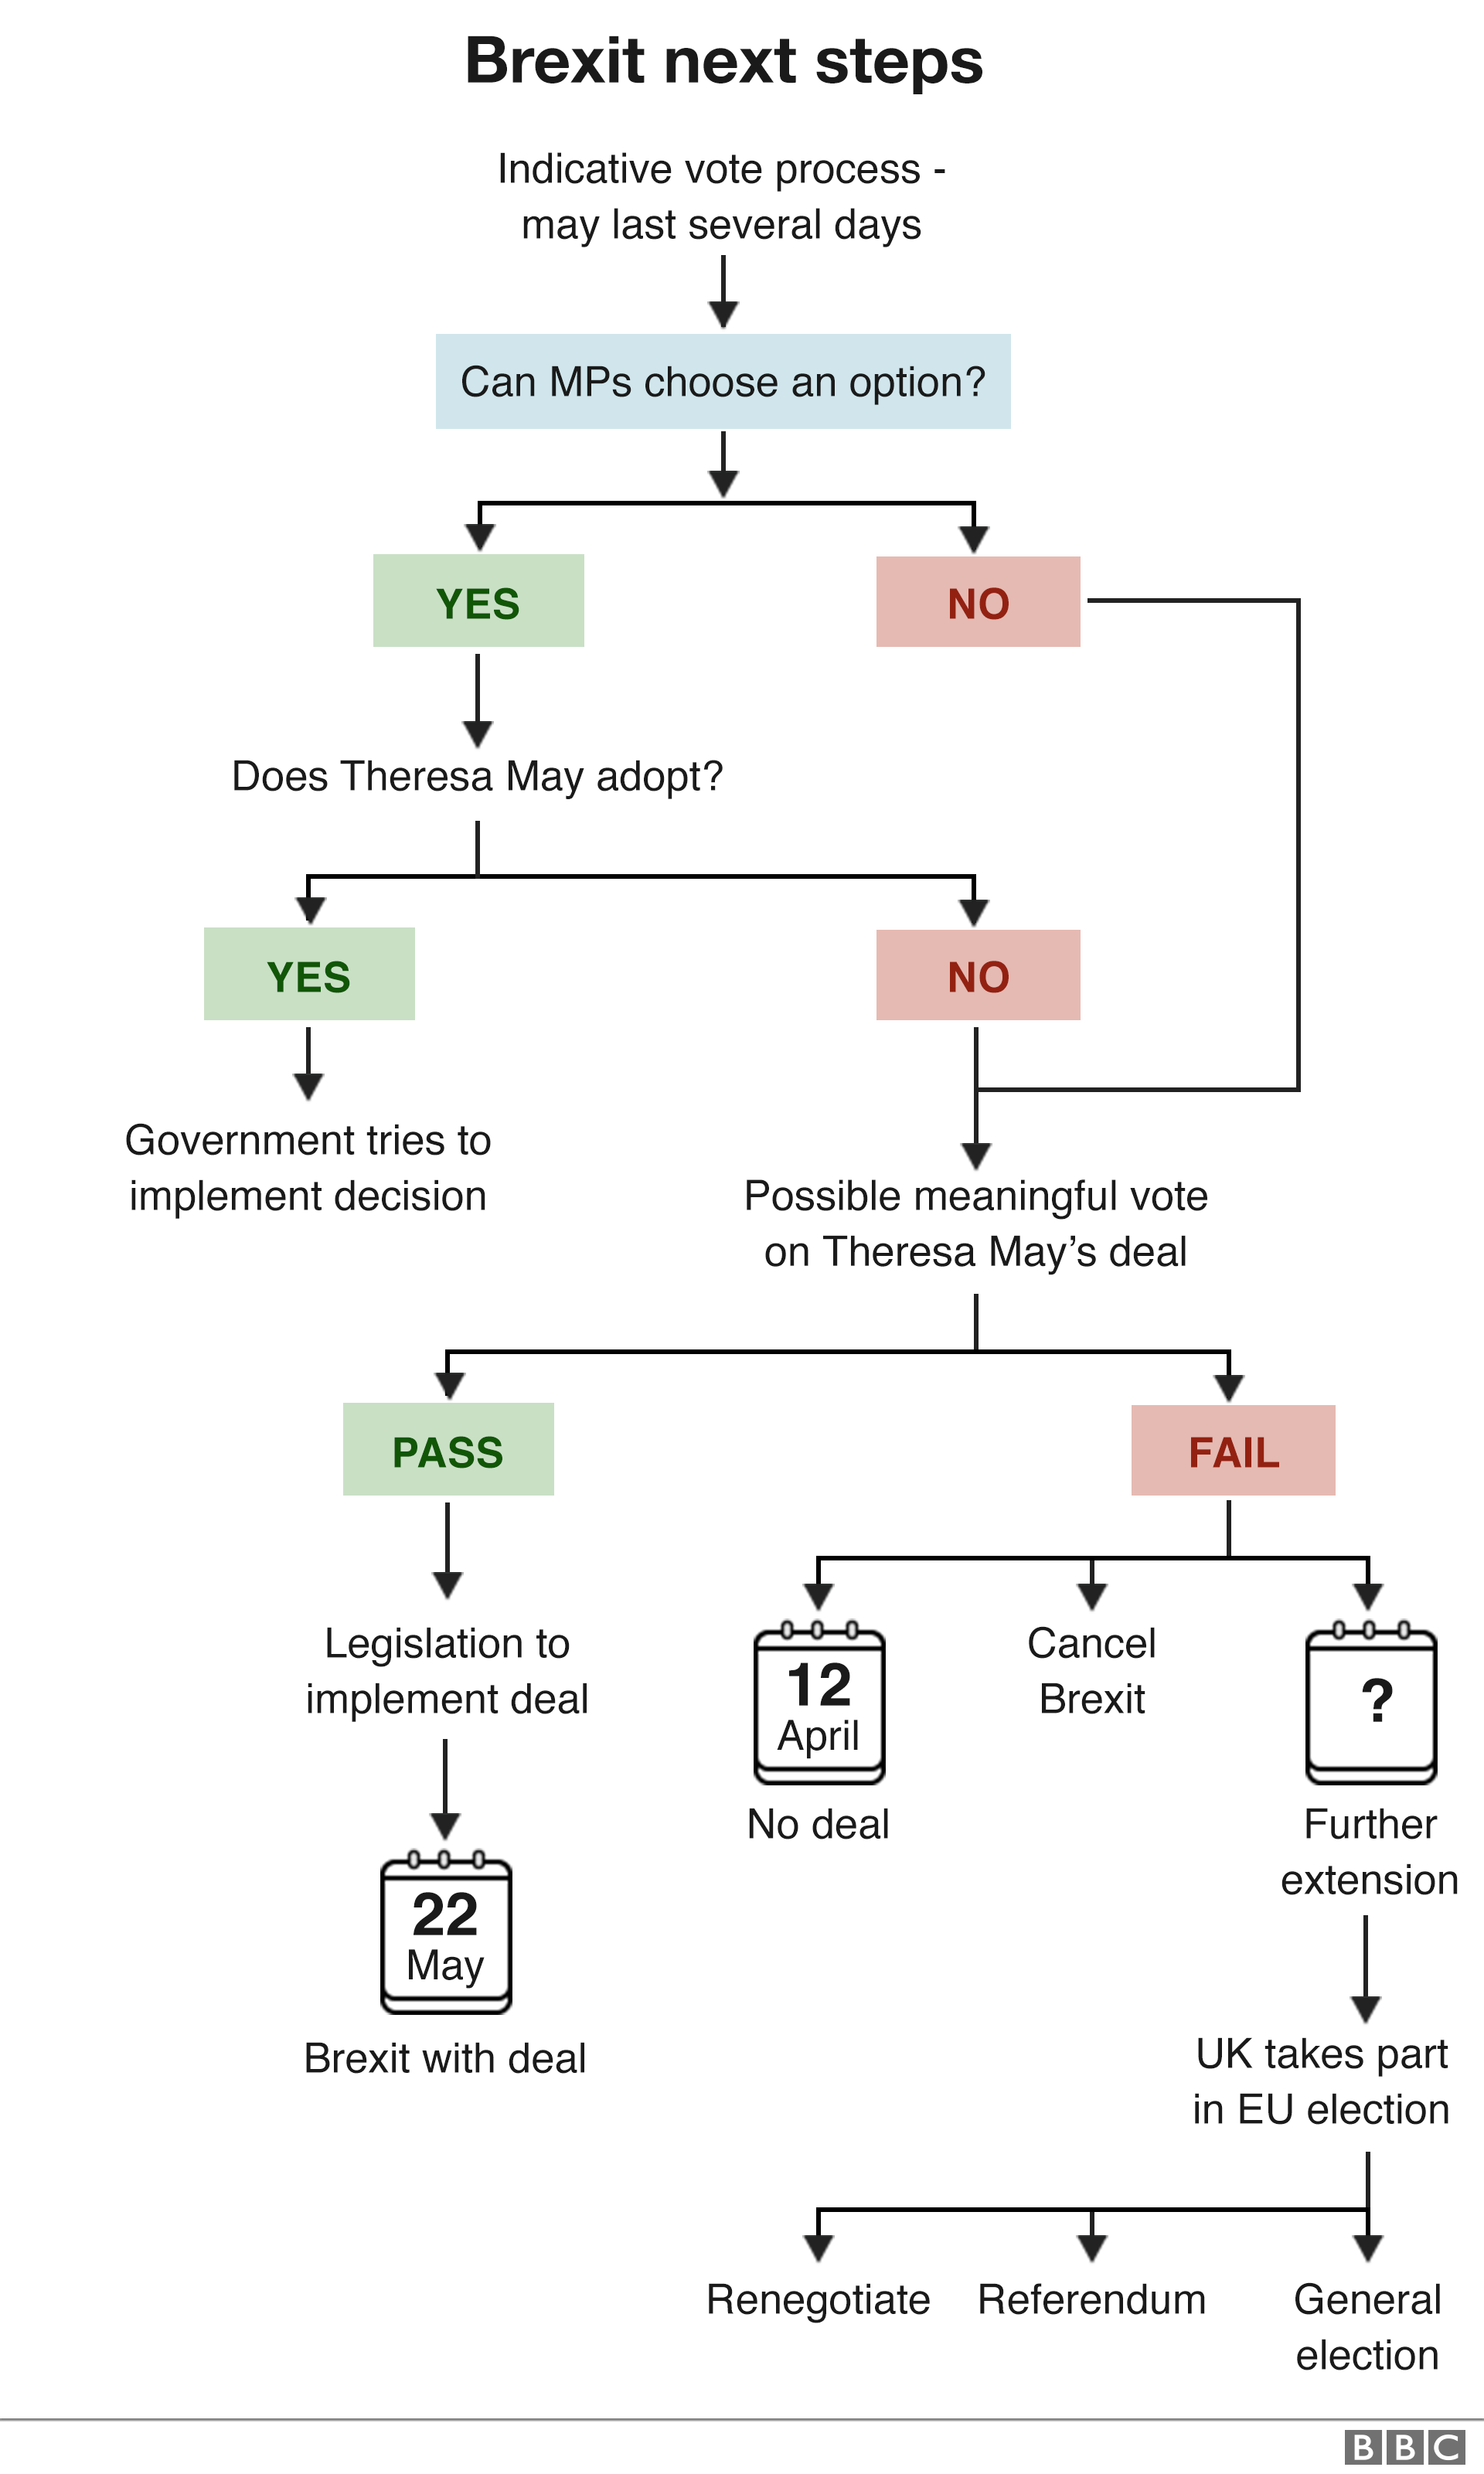 Flow chart showing the next steps for Brexit